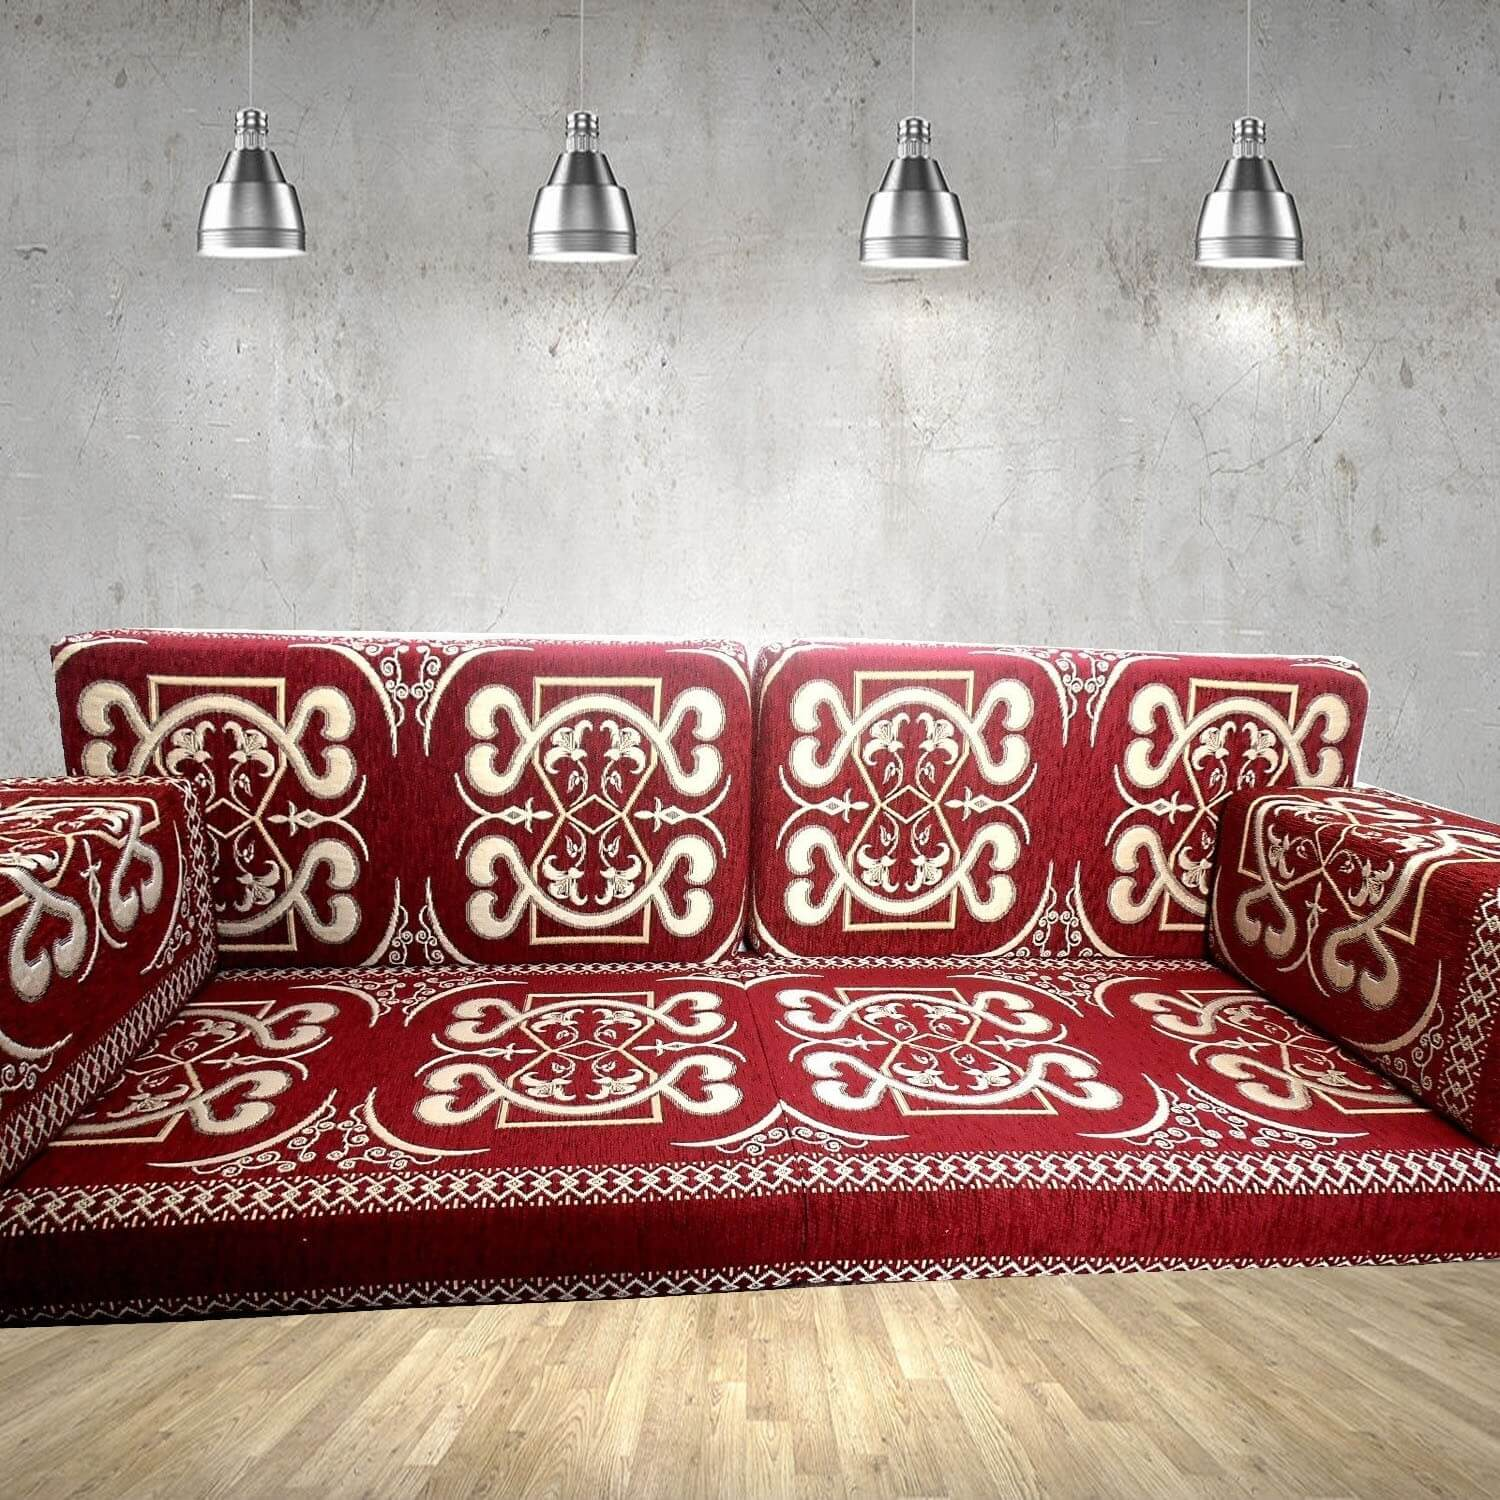 Floor sofa with double back pillows - SHI_FS205